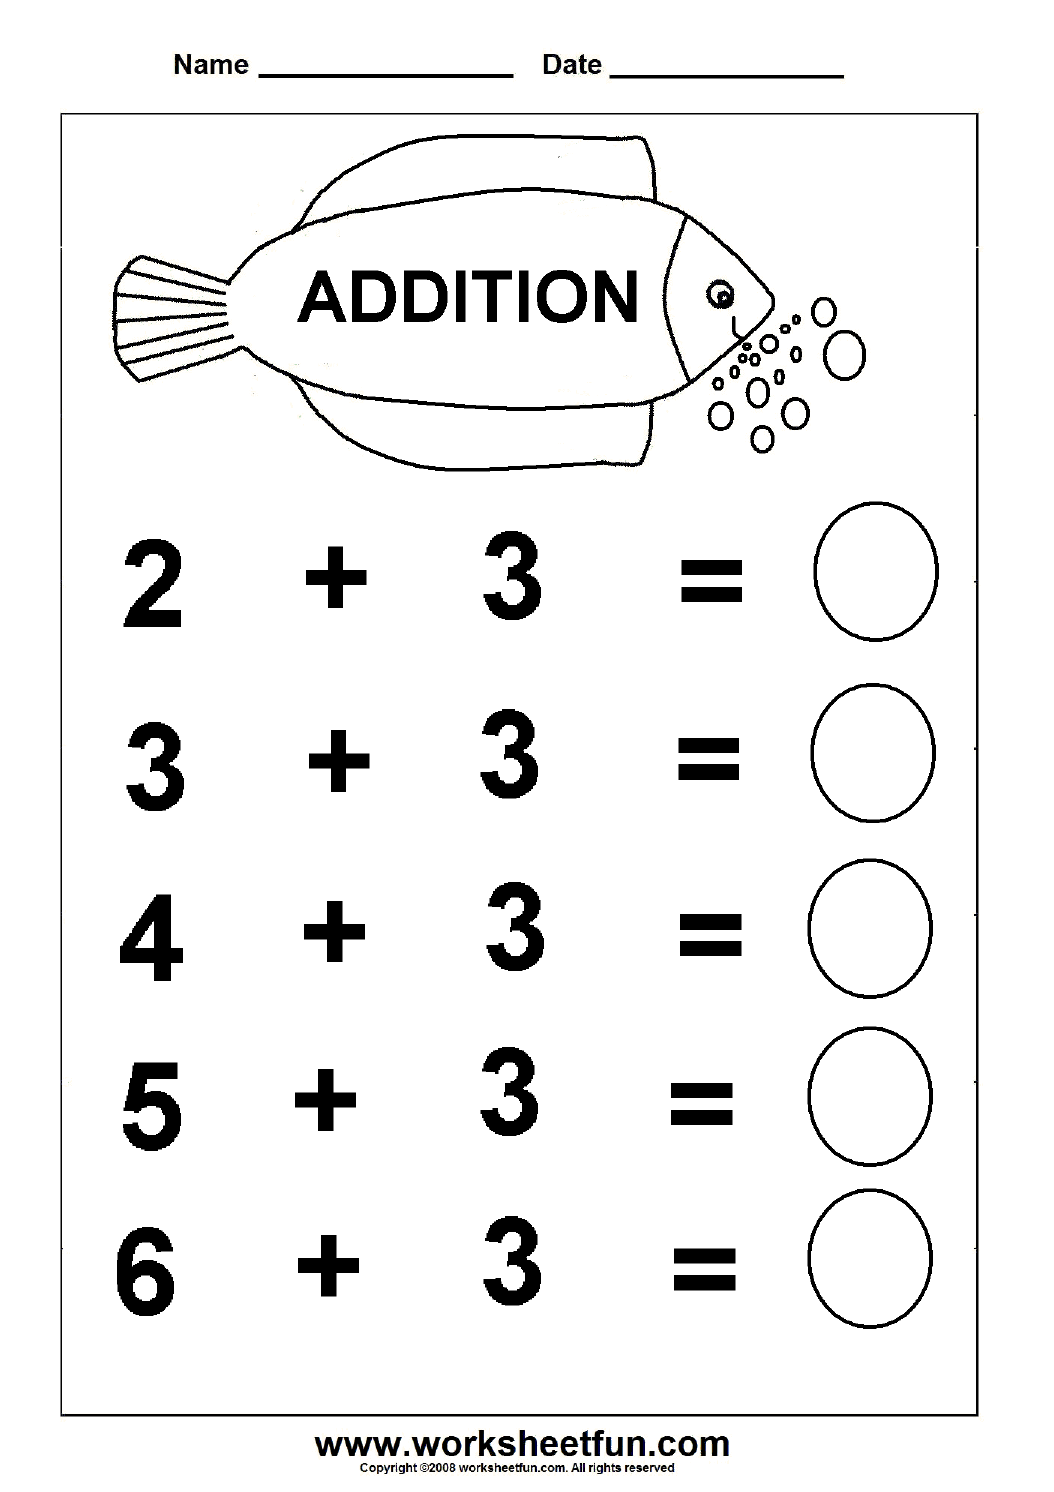 Kidz Worksheets: Preschool Addition Worksheet1